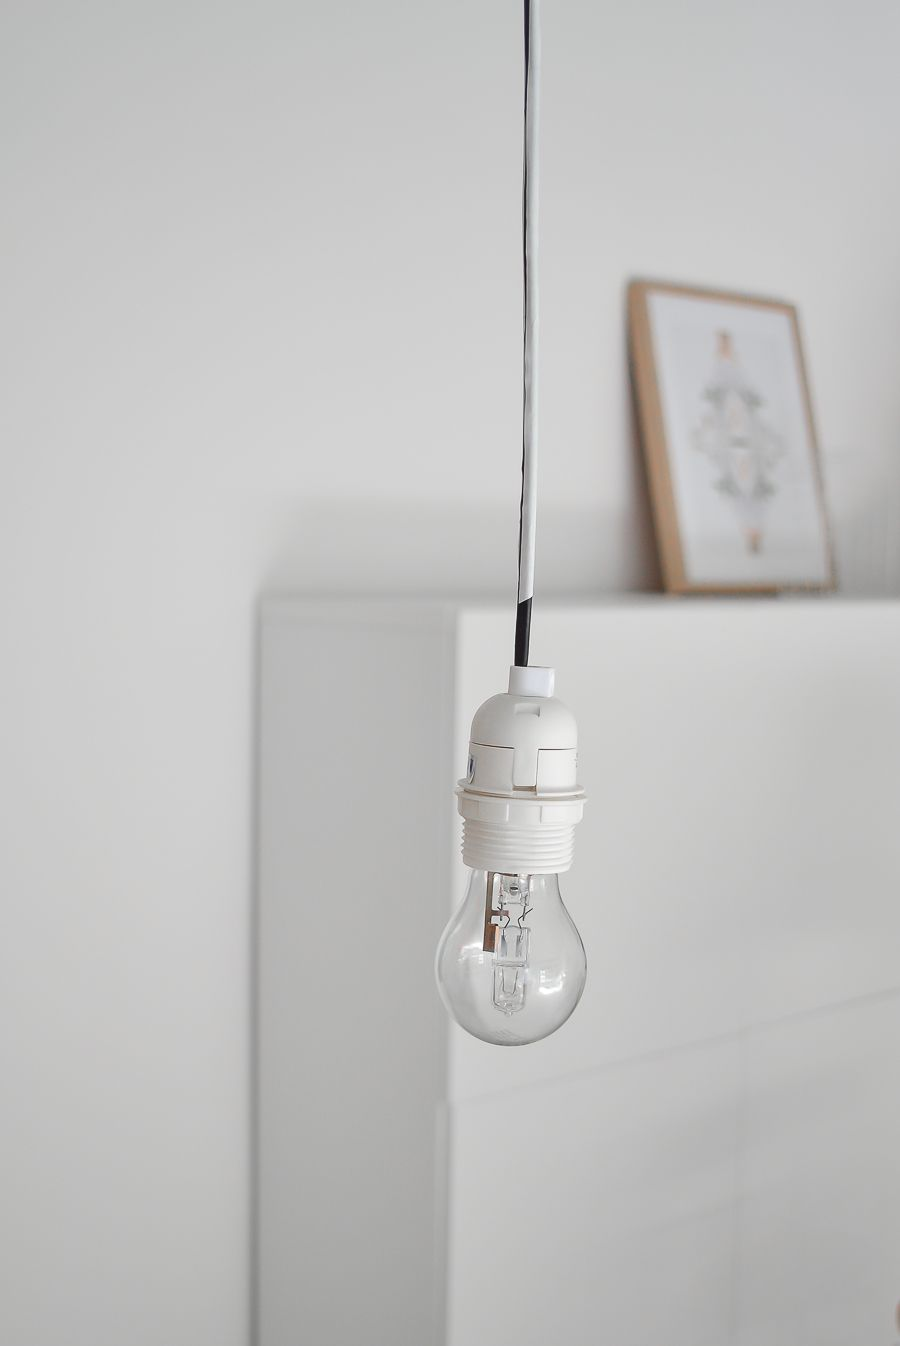 Wallpaper into a lampshade - lightbulb